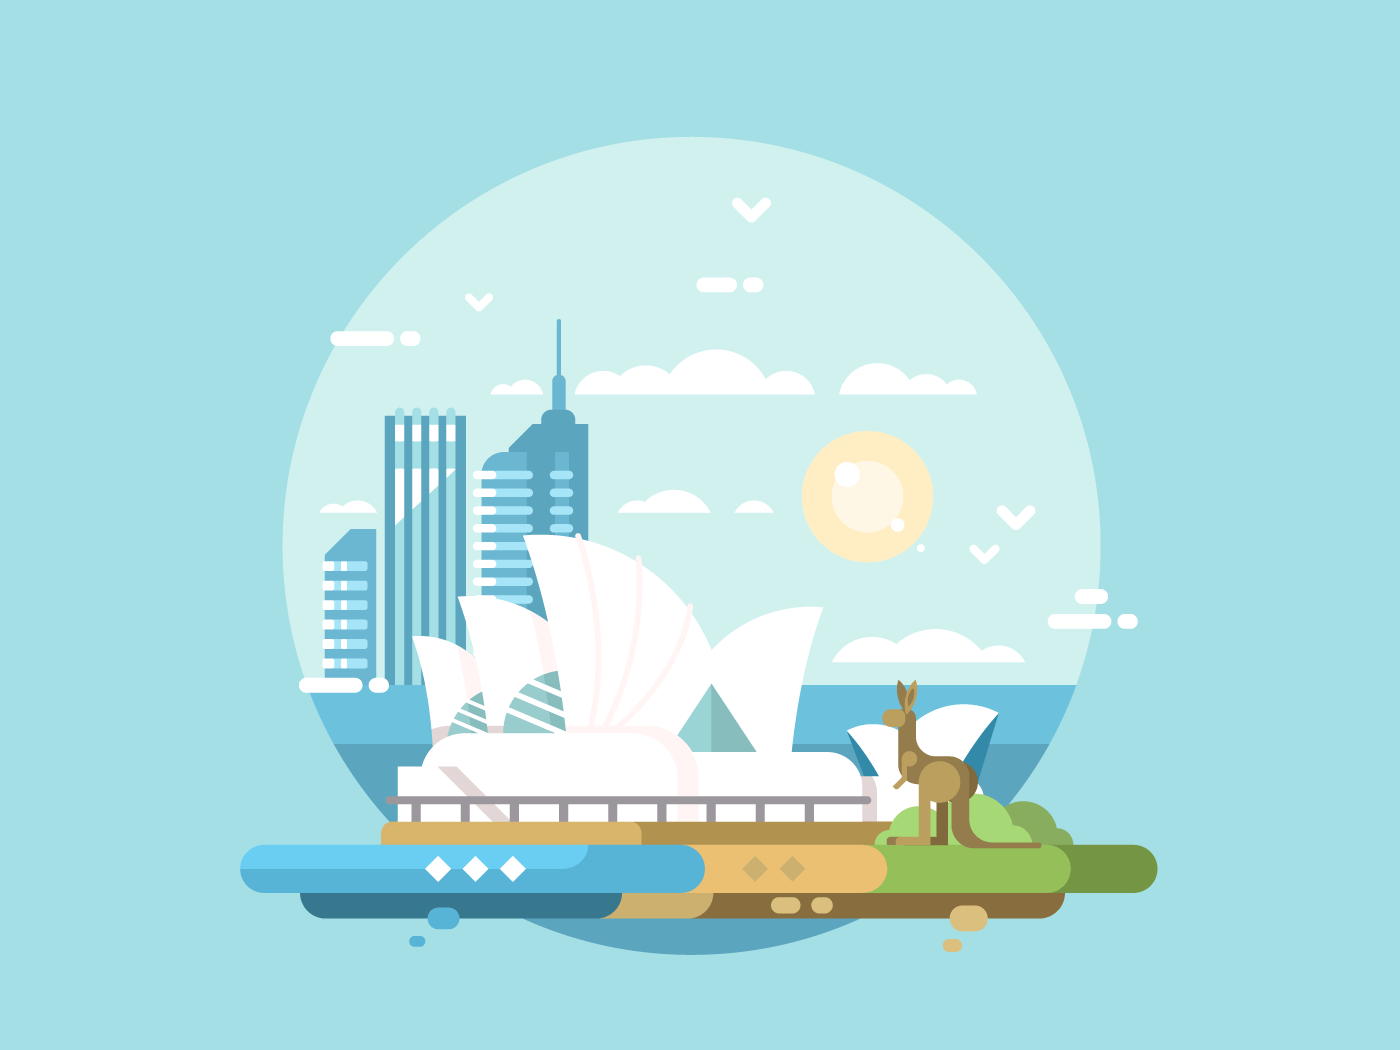 Sydney city flat vector illustration